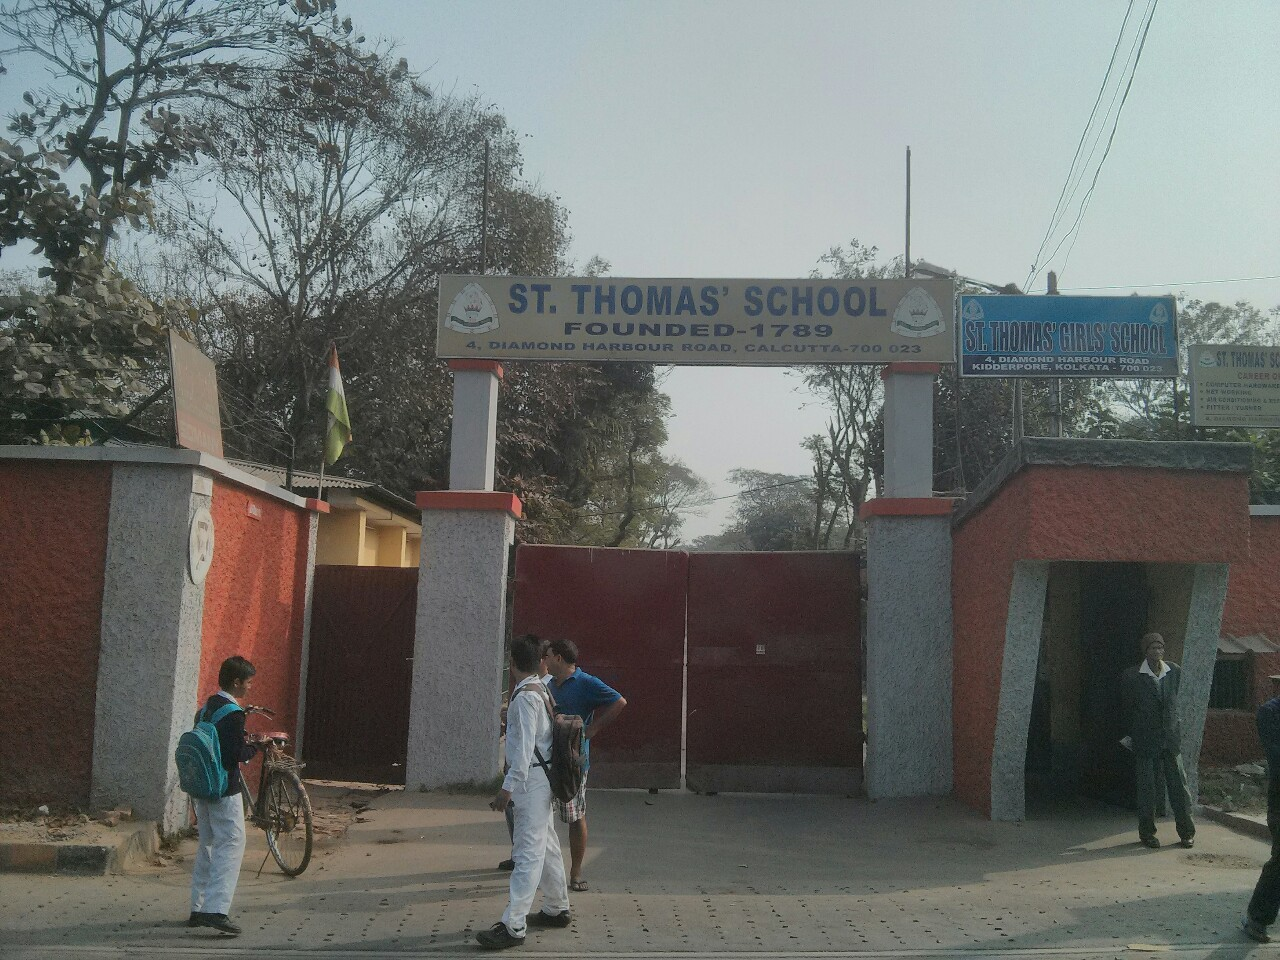 St Thomas' School at Kidderpore in Kolkata (formerly Calcutta)